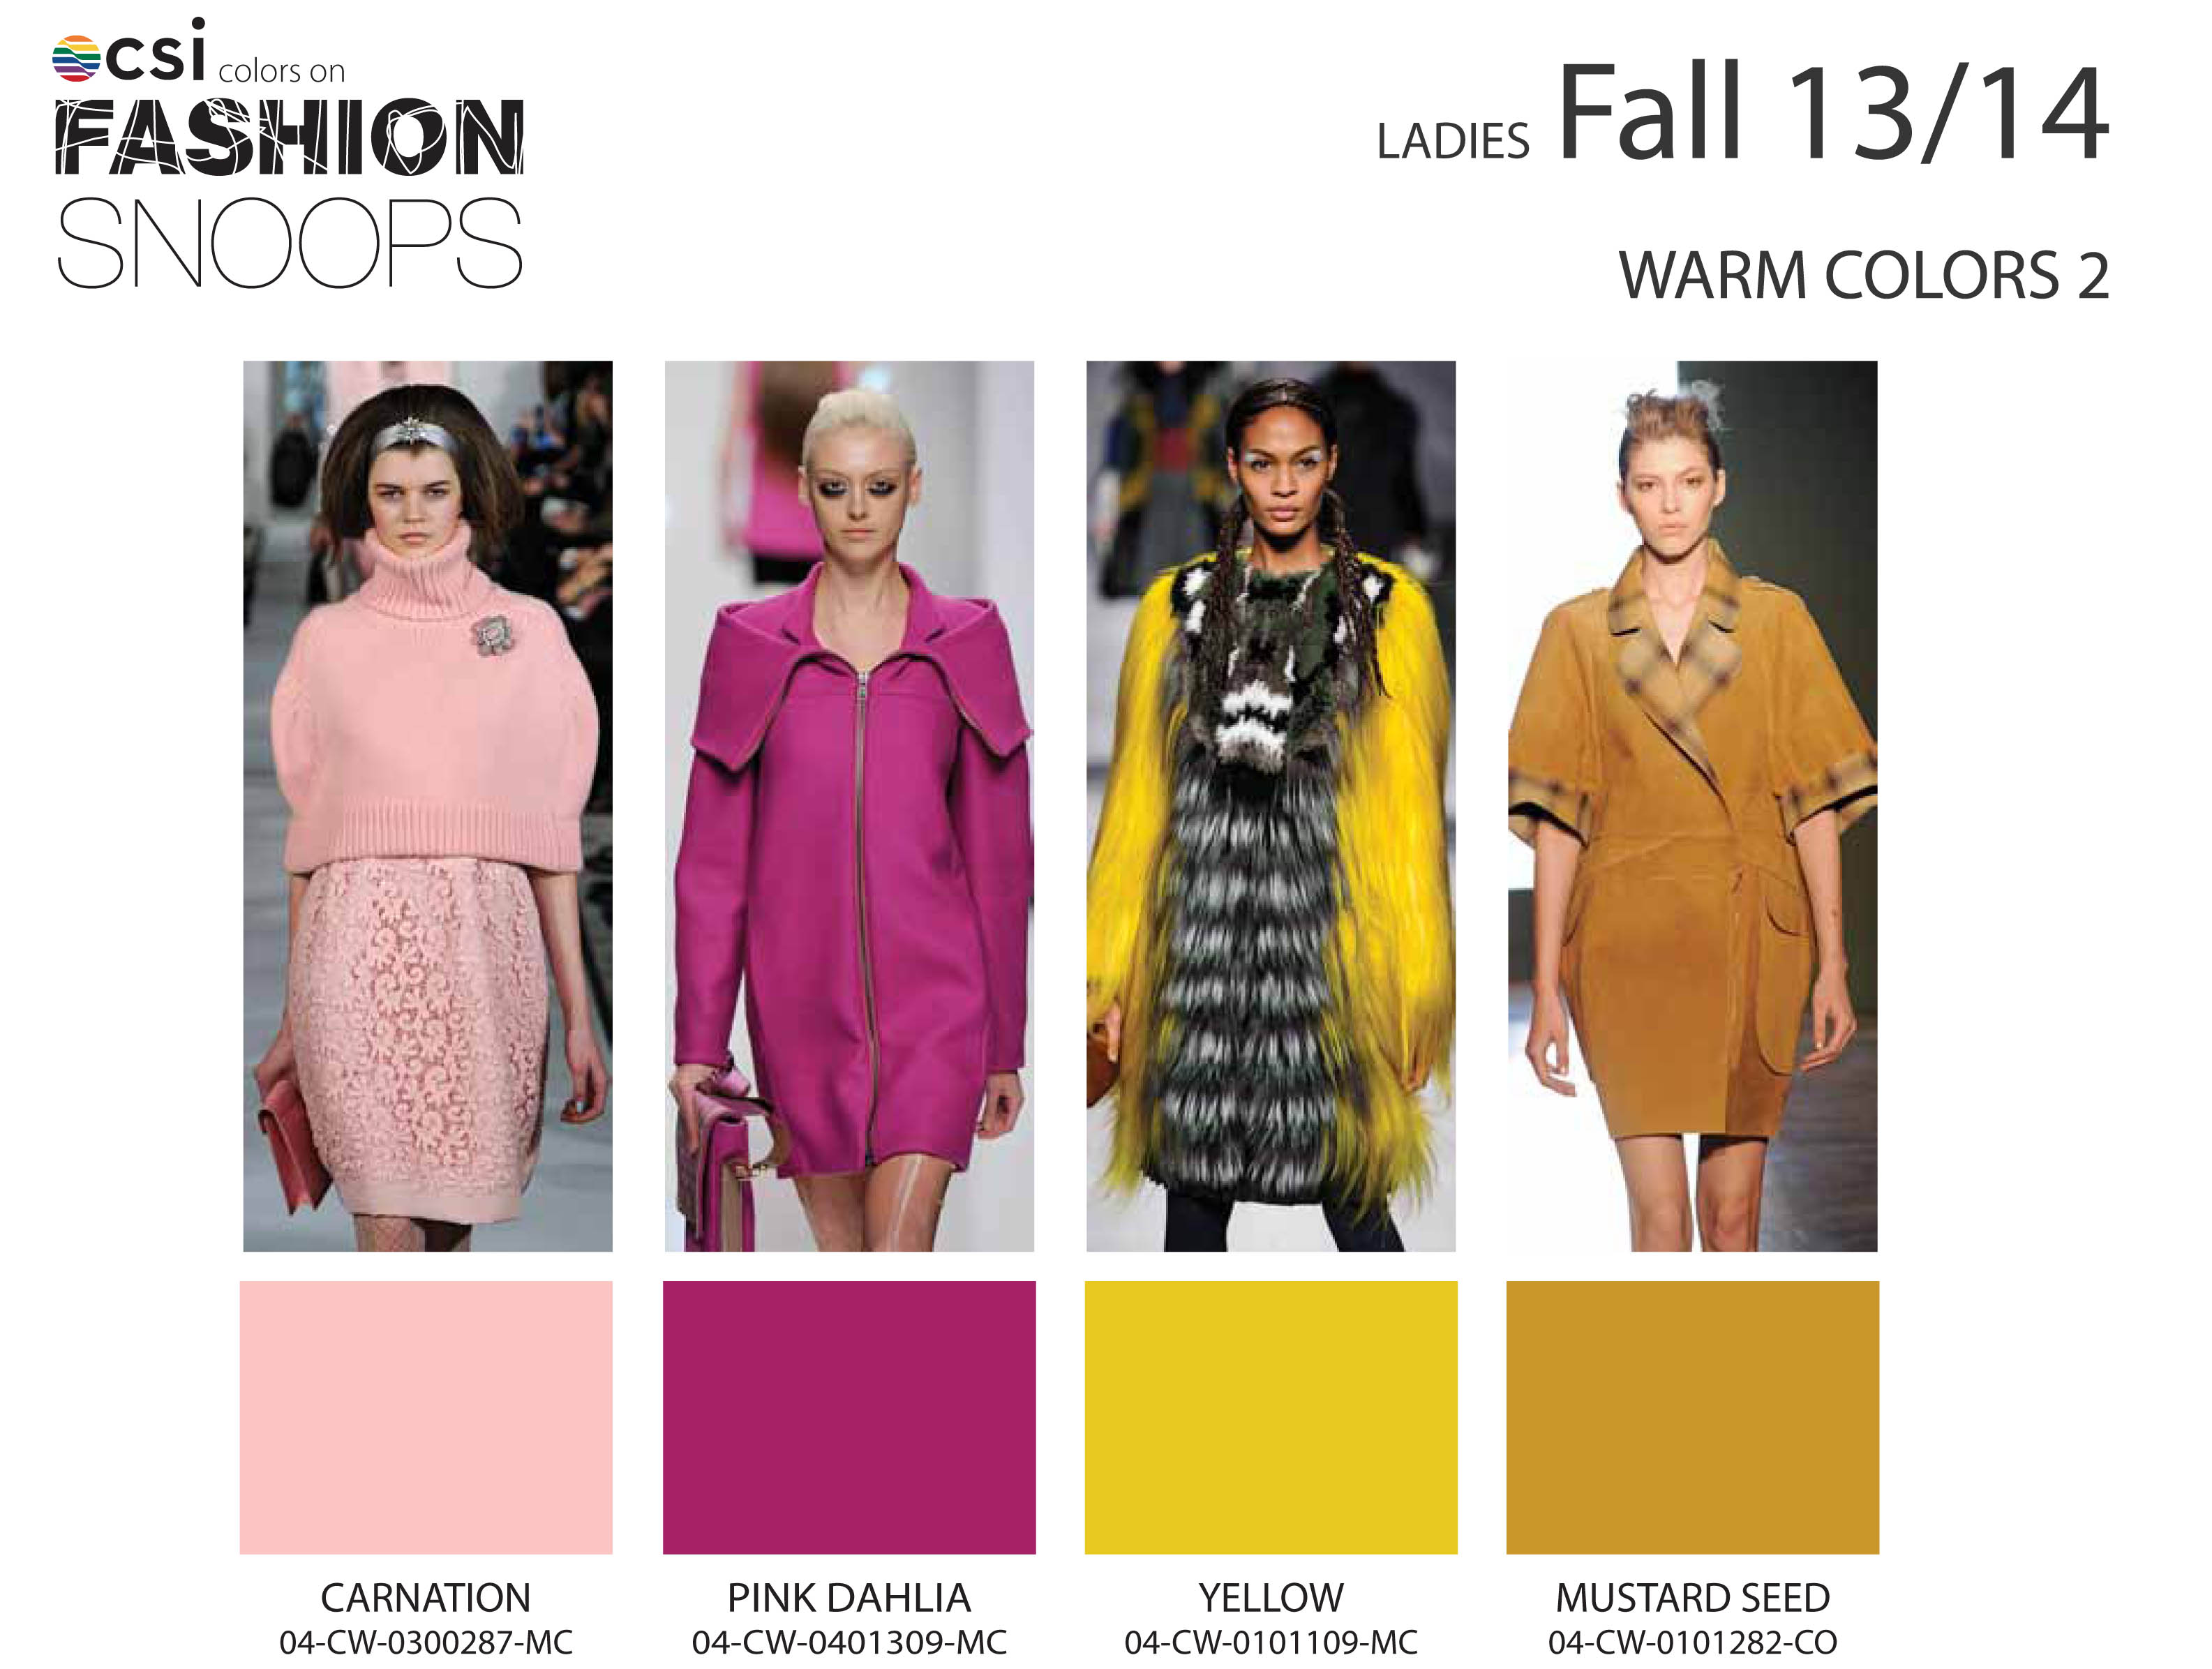 Fall winter 2013 fashion trends for women -  7 8